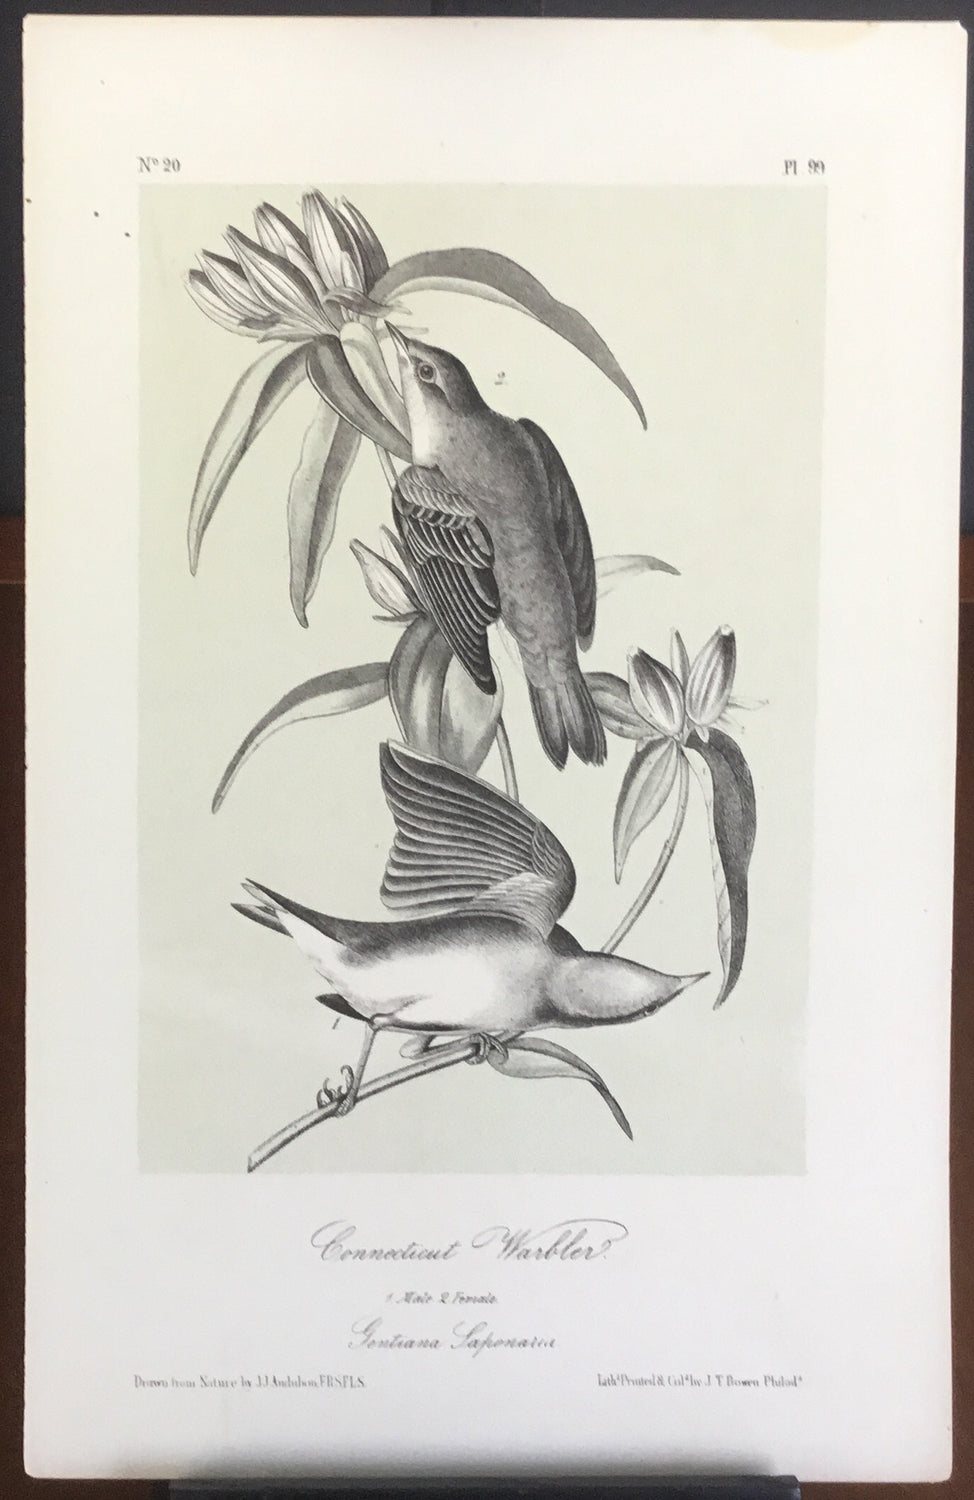 Audubon Octavo Connecticut Warbler, plate 99, uncolored test sheet, 7 x 11